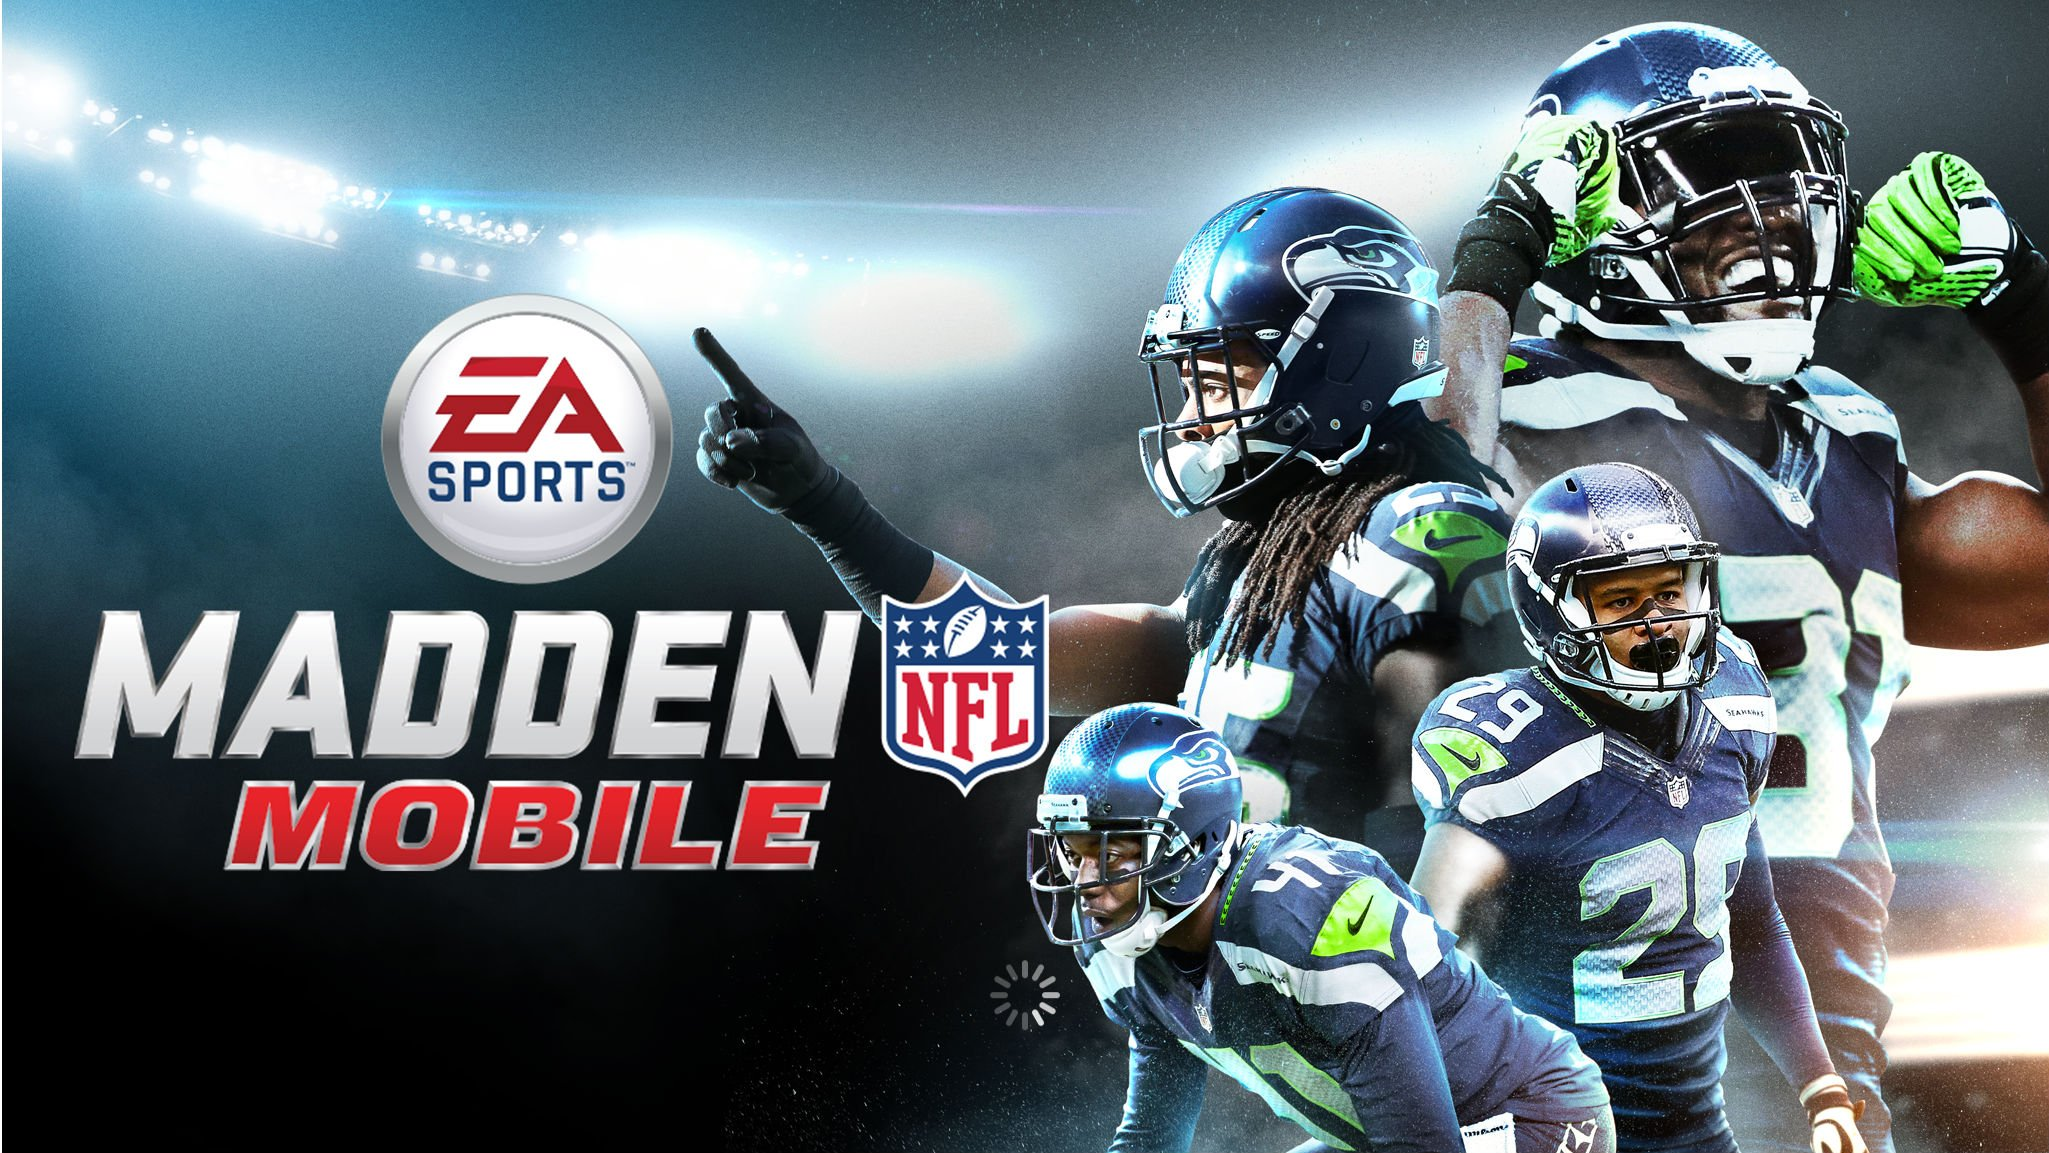 Madden NFL Mobile money hacks and cheats download without survey